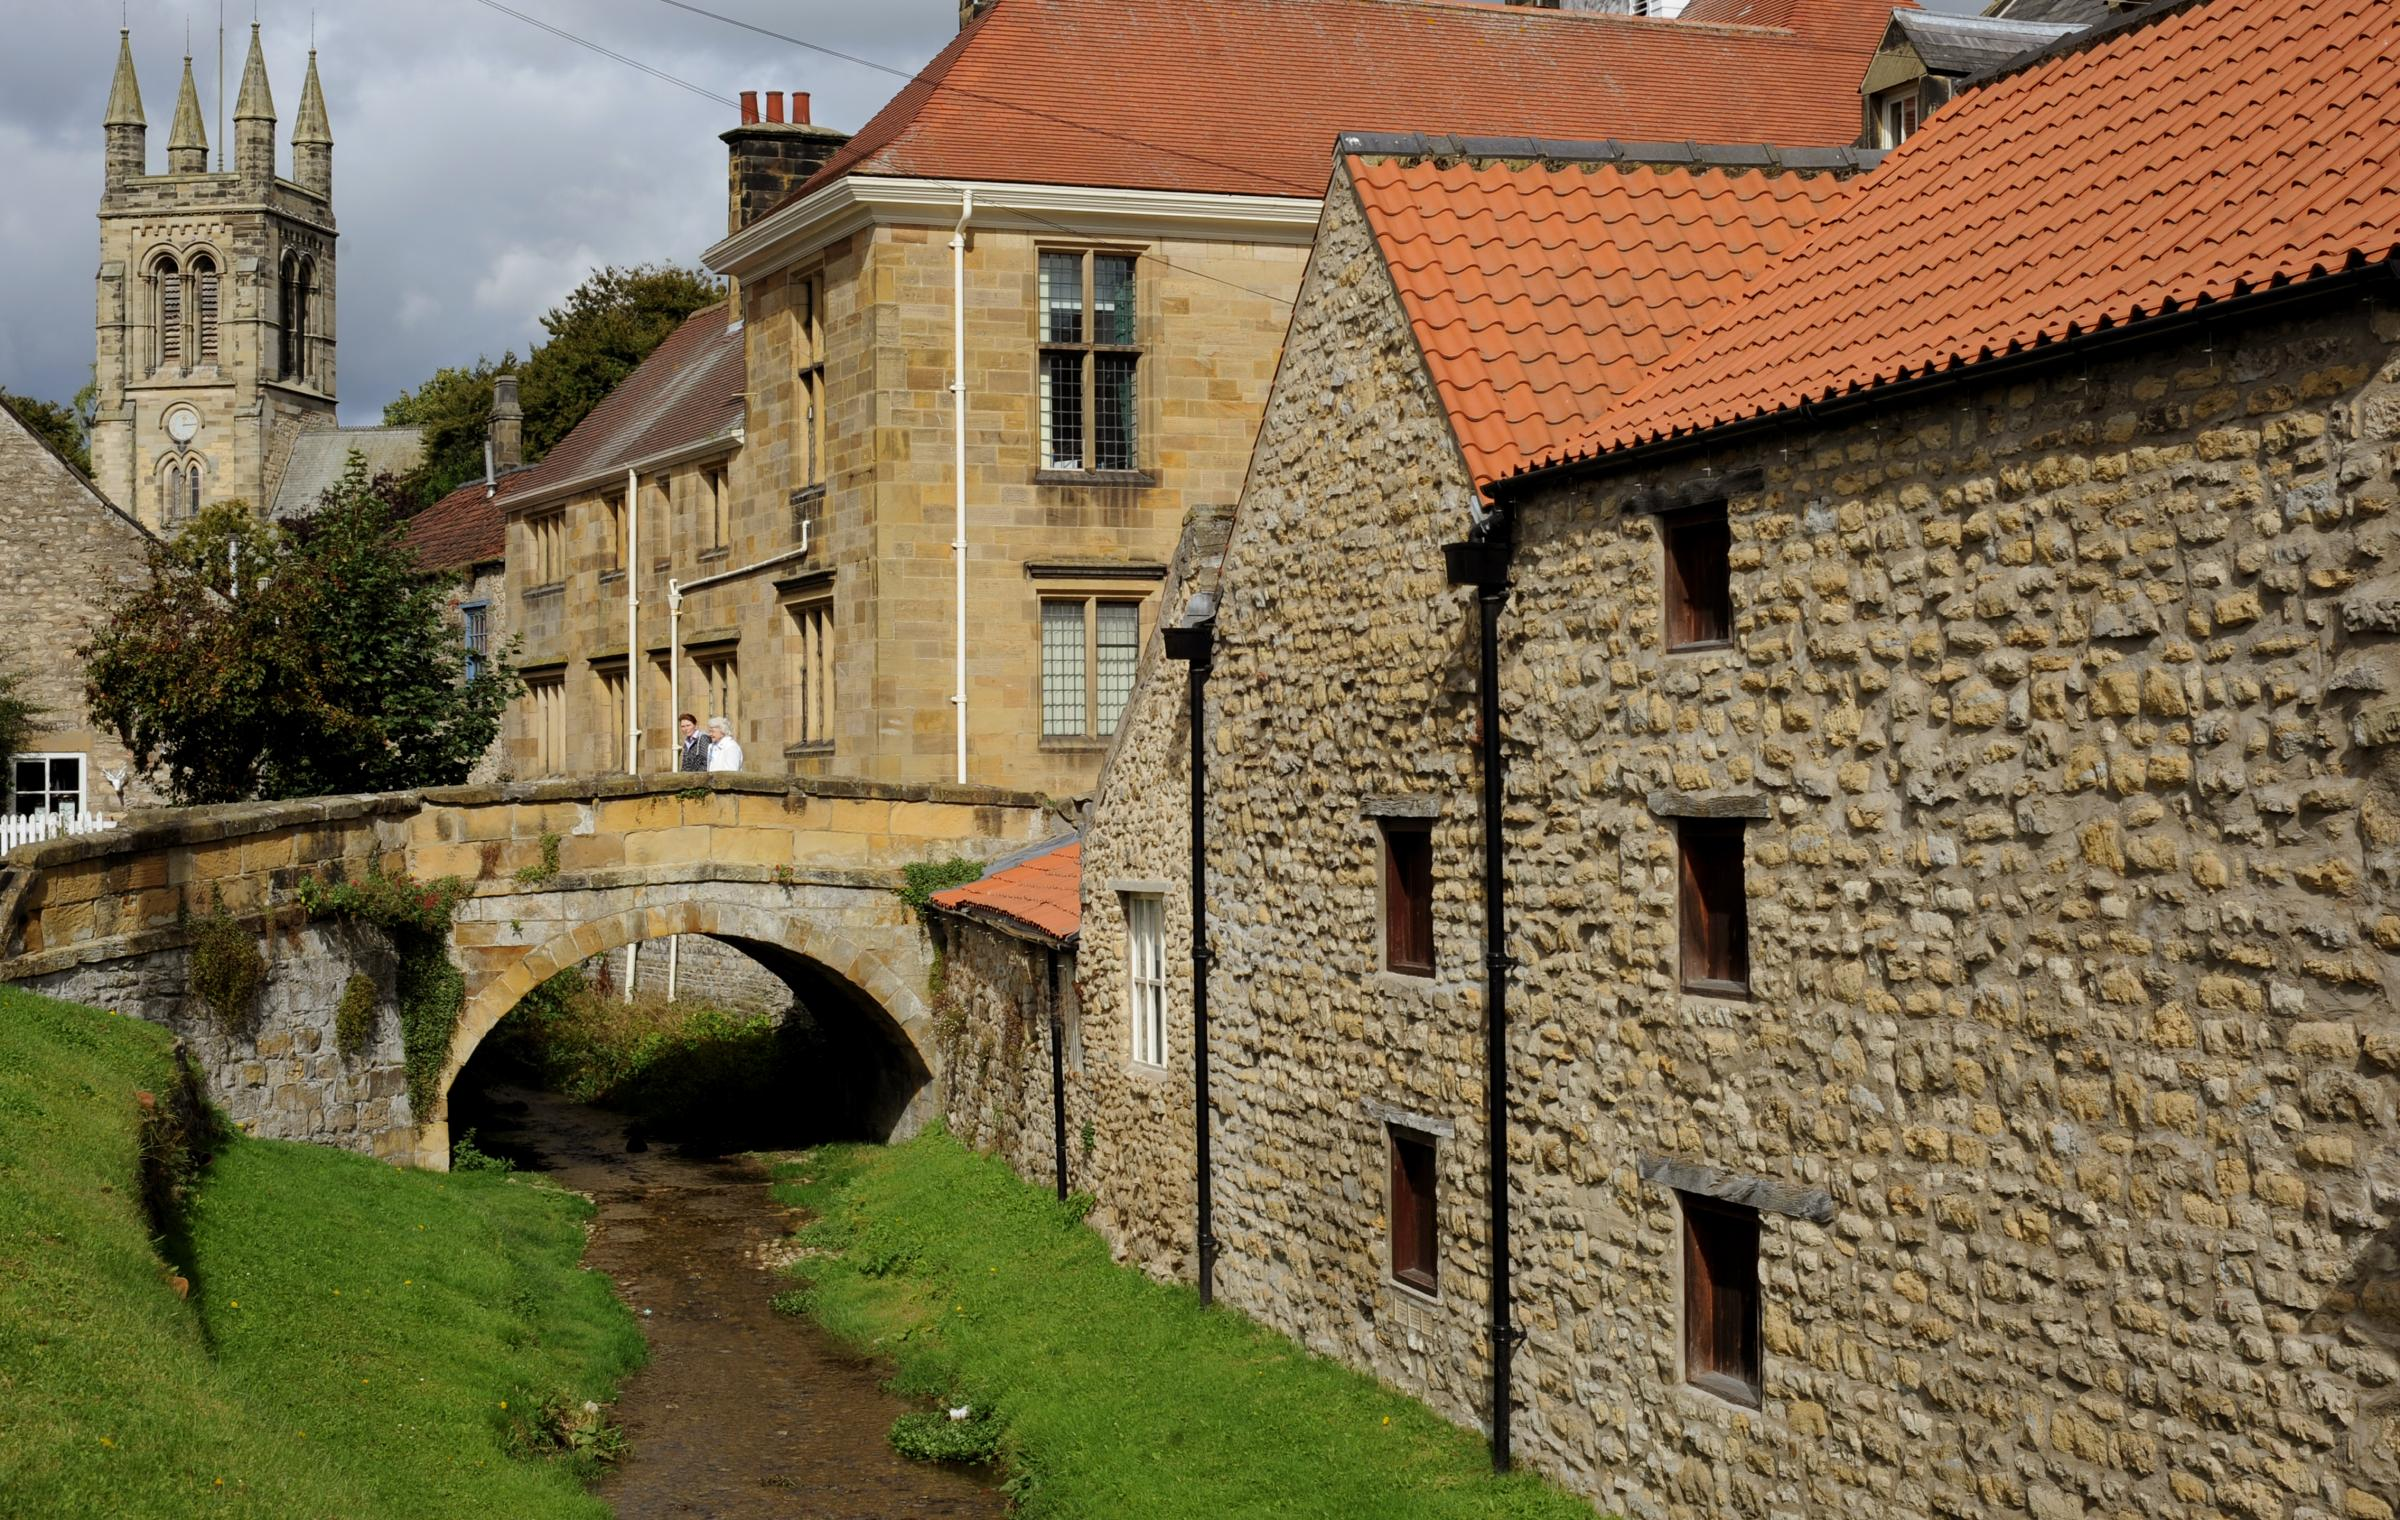 A view of Helmsley